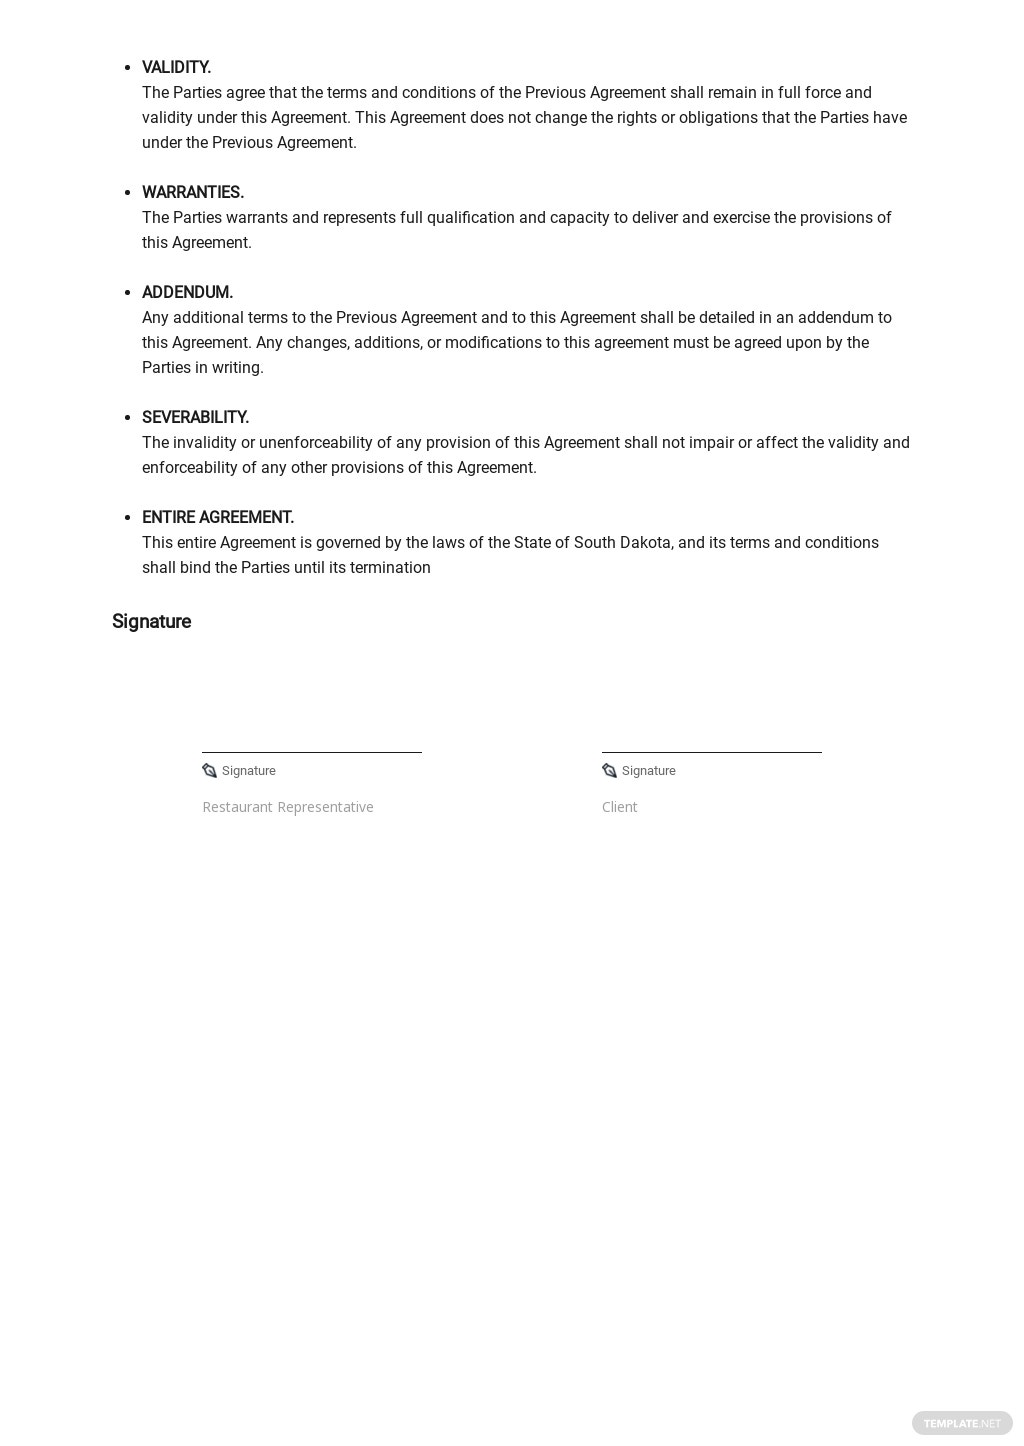 Restaurant Contract Extension Agreement Template 2.jpe